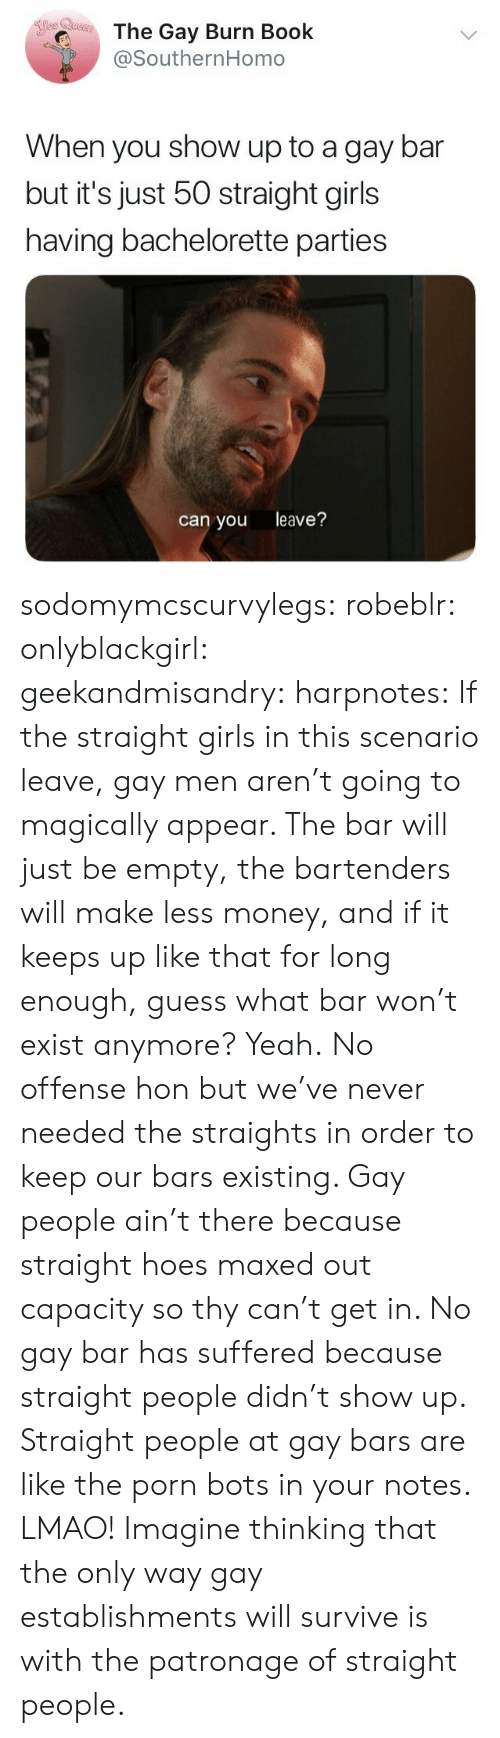 Bartenders: The Gay Burn Book  @SouthernHomo  When you show up to a gay bar  but it's just 50 straight girls  having bachelorette parties  can you leave? sodomymcscurvylegs:  robeblr:  onlyblackgirl:   geekandmisandry:   harpnotes:  If the straight girls in this scenario leave, gay men aren't going to magically appear. The bar will just be empty, the bartenders will make less money, and if it keeps up like that for long enough, guess what bar won't exist anymore? Yeah.  No offense hon but we've never needed the straights in order to keep our bars existing.    Gay people ain't there because straight hoes maxed out capacity so thy can't get in. No gay bar has suffered because straight people didn't show up.    Straight people at gay bars are like the porn bots in your notes.   LMAO! Imagine thinking that the only way gay establishments will survive is with the patronage of straight people.